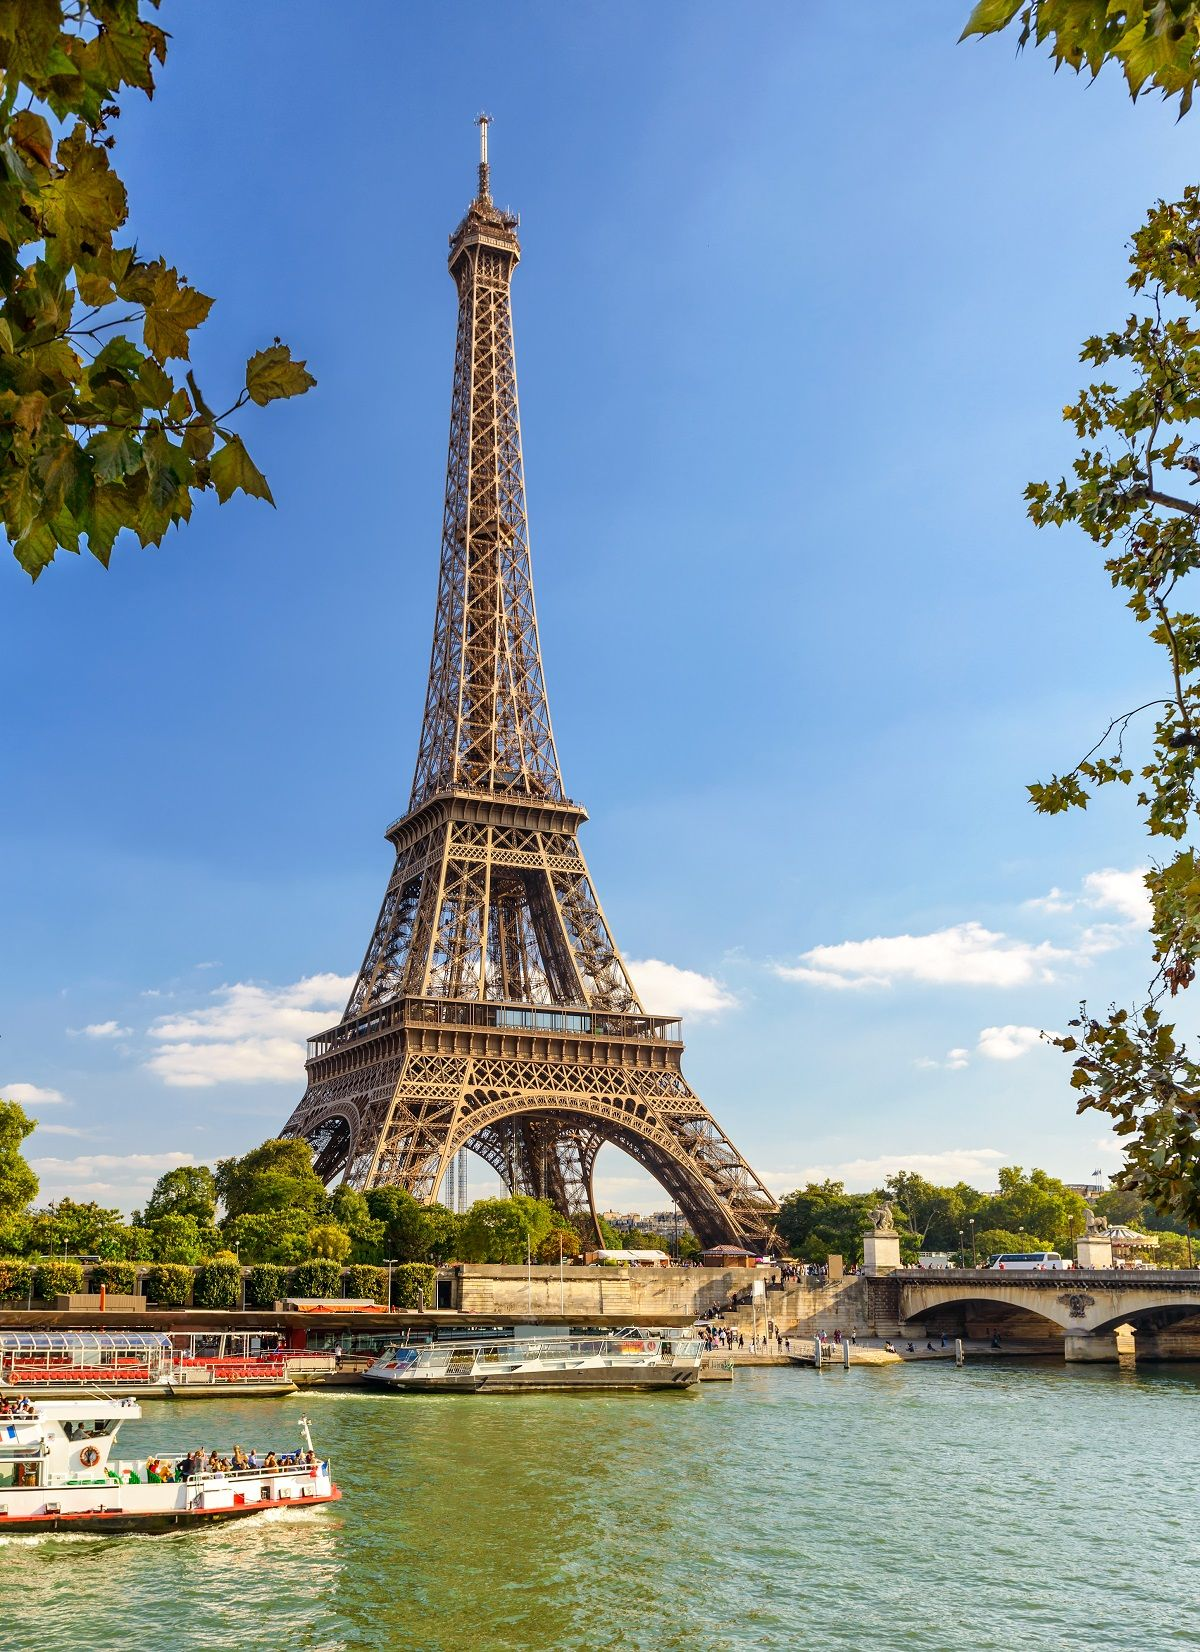 Enjoy live music and a delicious 3-course dinner in this romantic sunset Seine River cruise